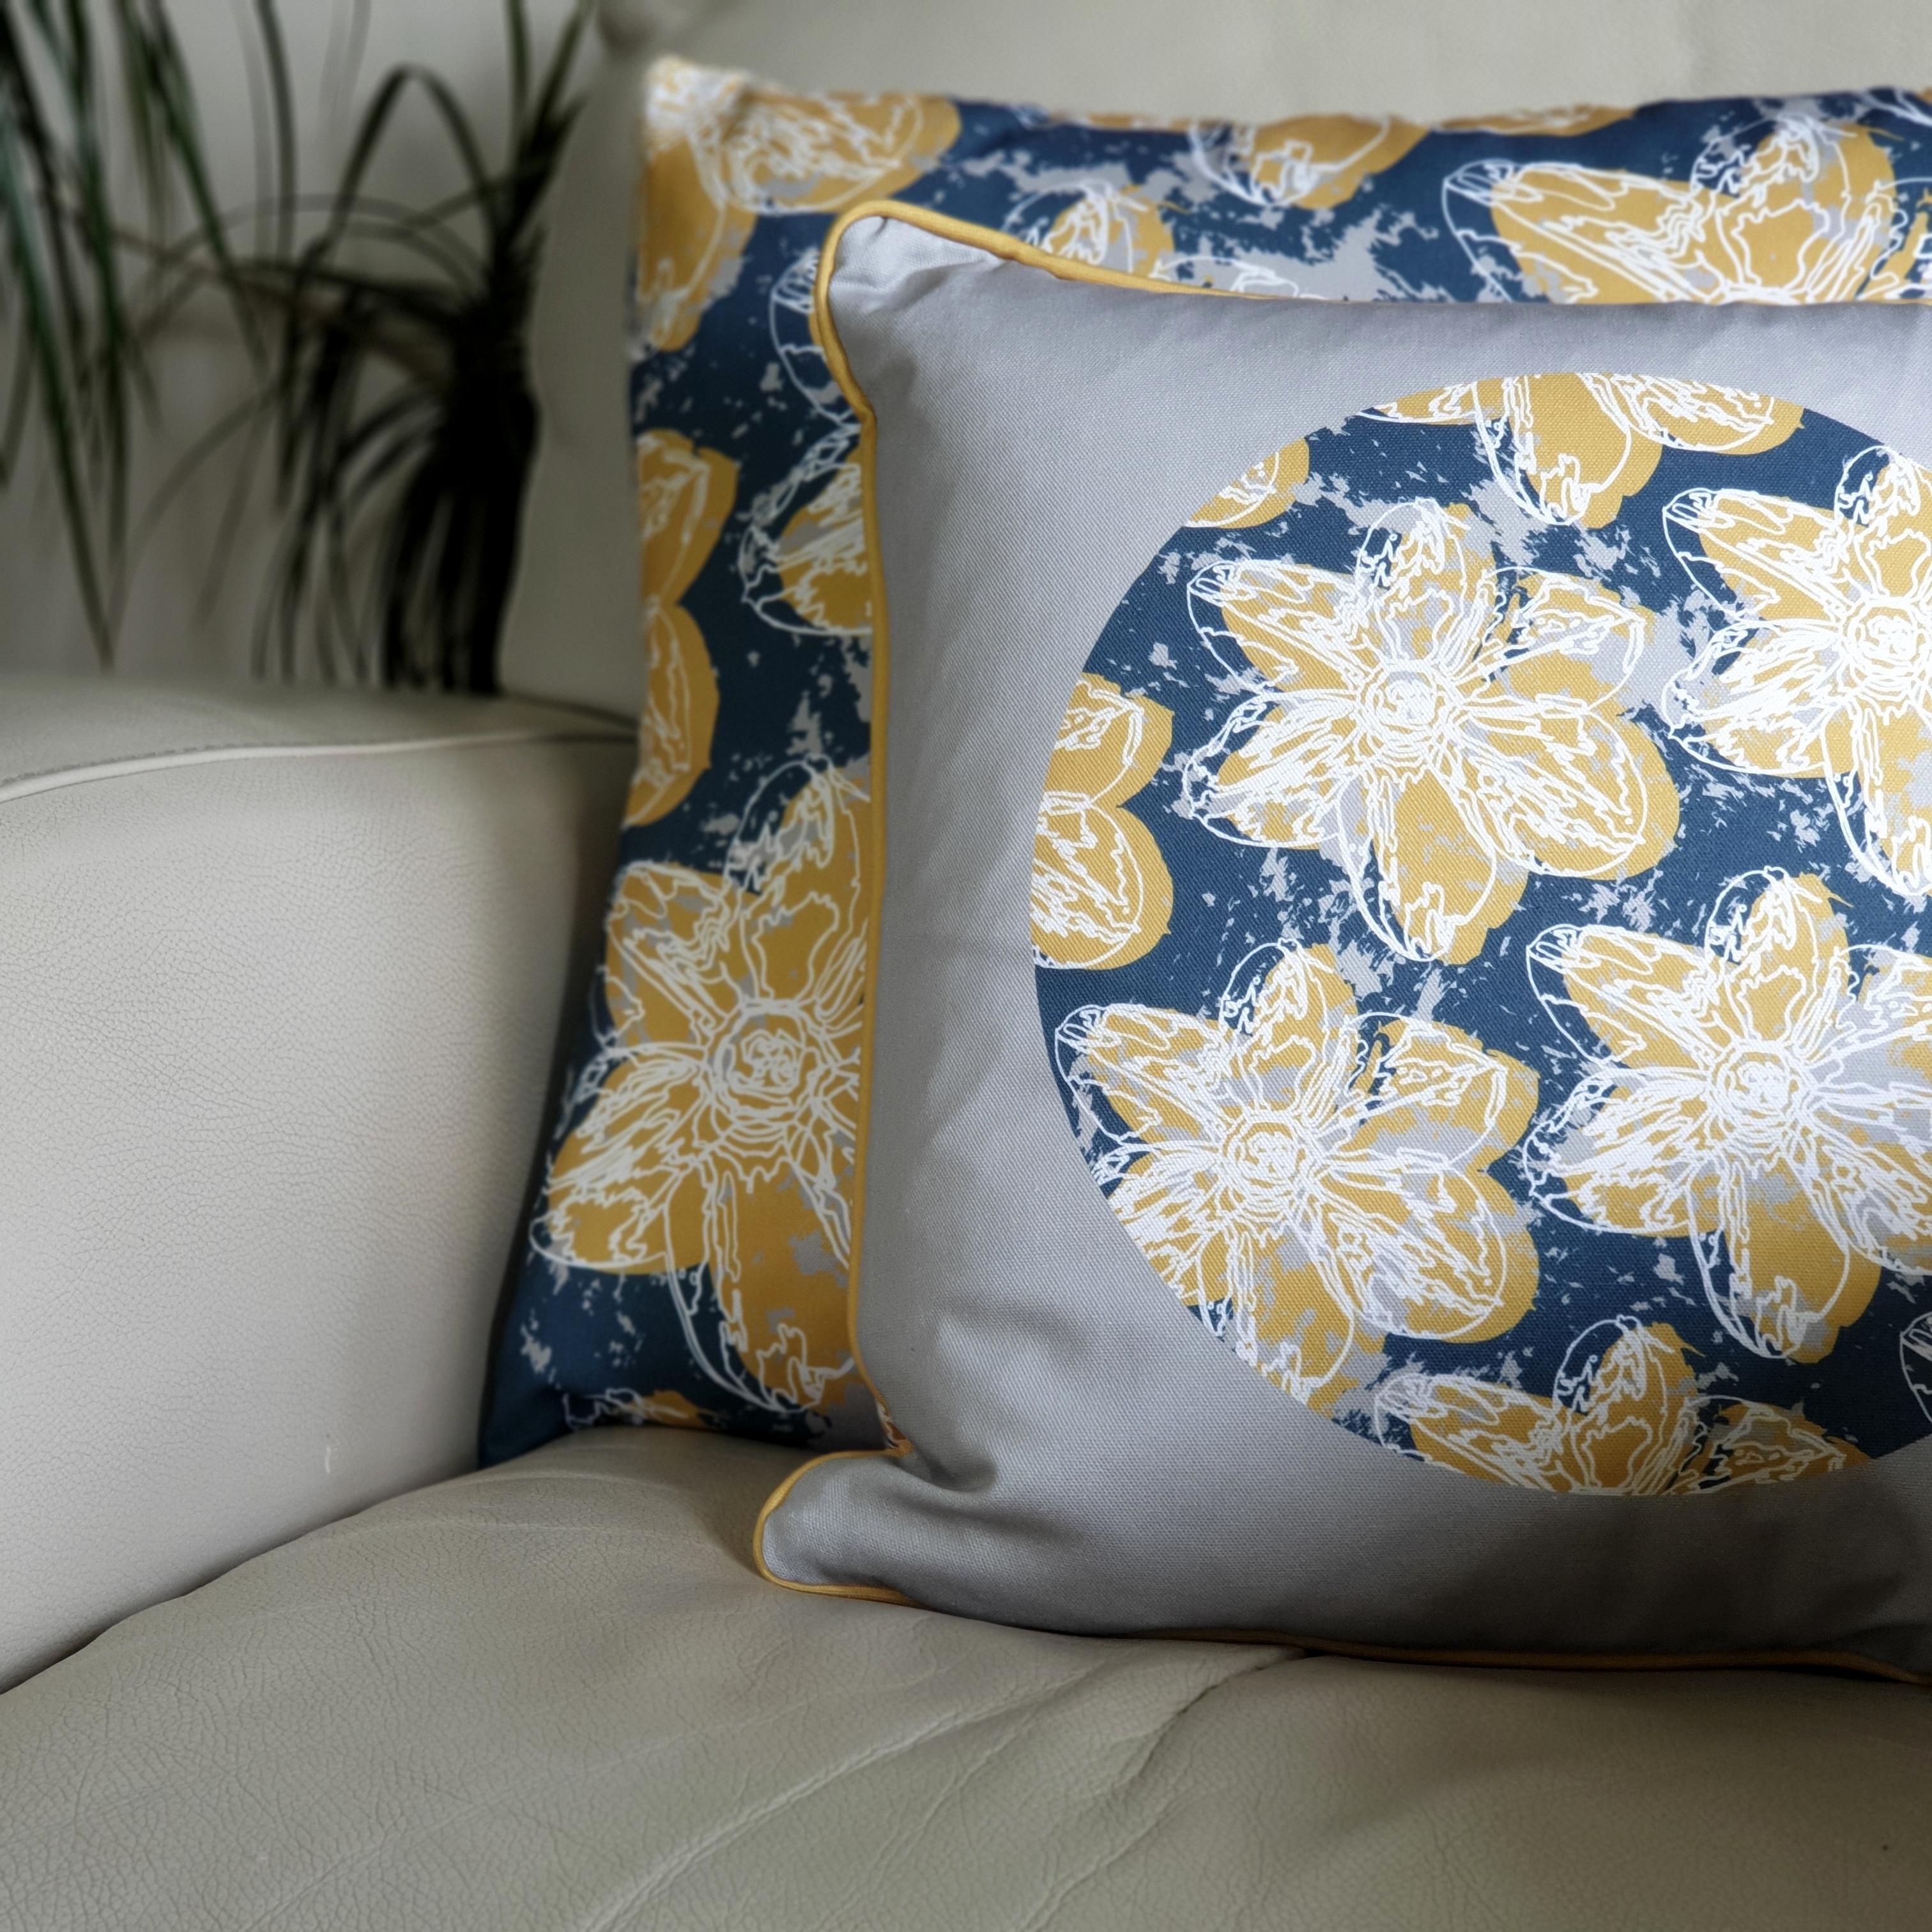 Double-sided 45cm square & 51cm square Flower Splash cushions, showing both sides, designed by thetinkan. Mustard yellow narcissus flower with white traced outline set within an oxford blue background with pale grey paint splashes. Available with an optional luxury cushion inner pad. VIEW PRODUCT >>